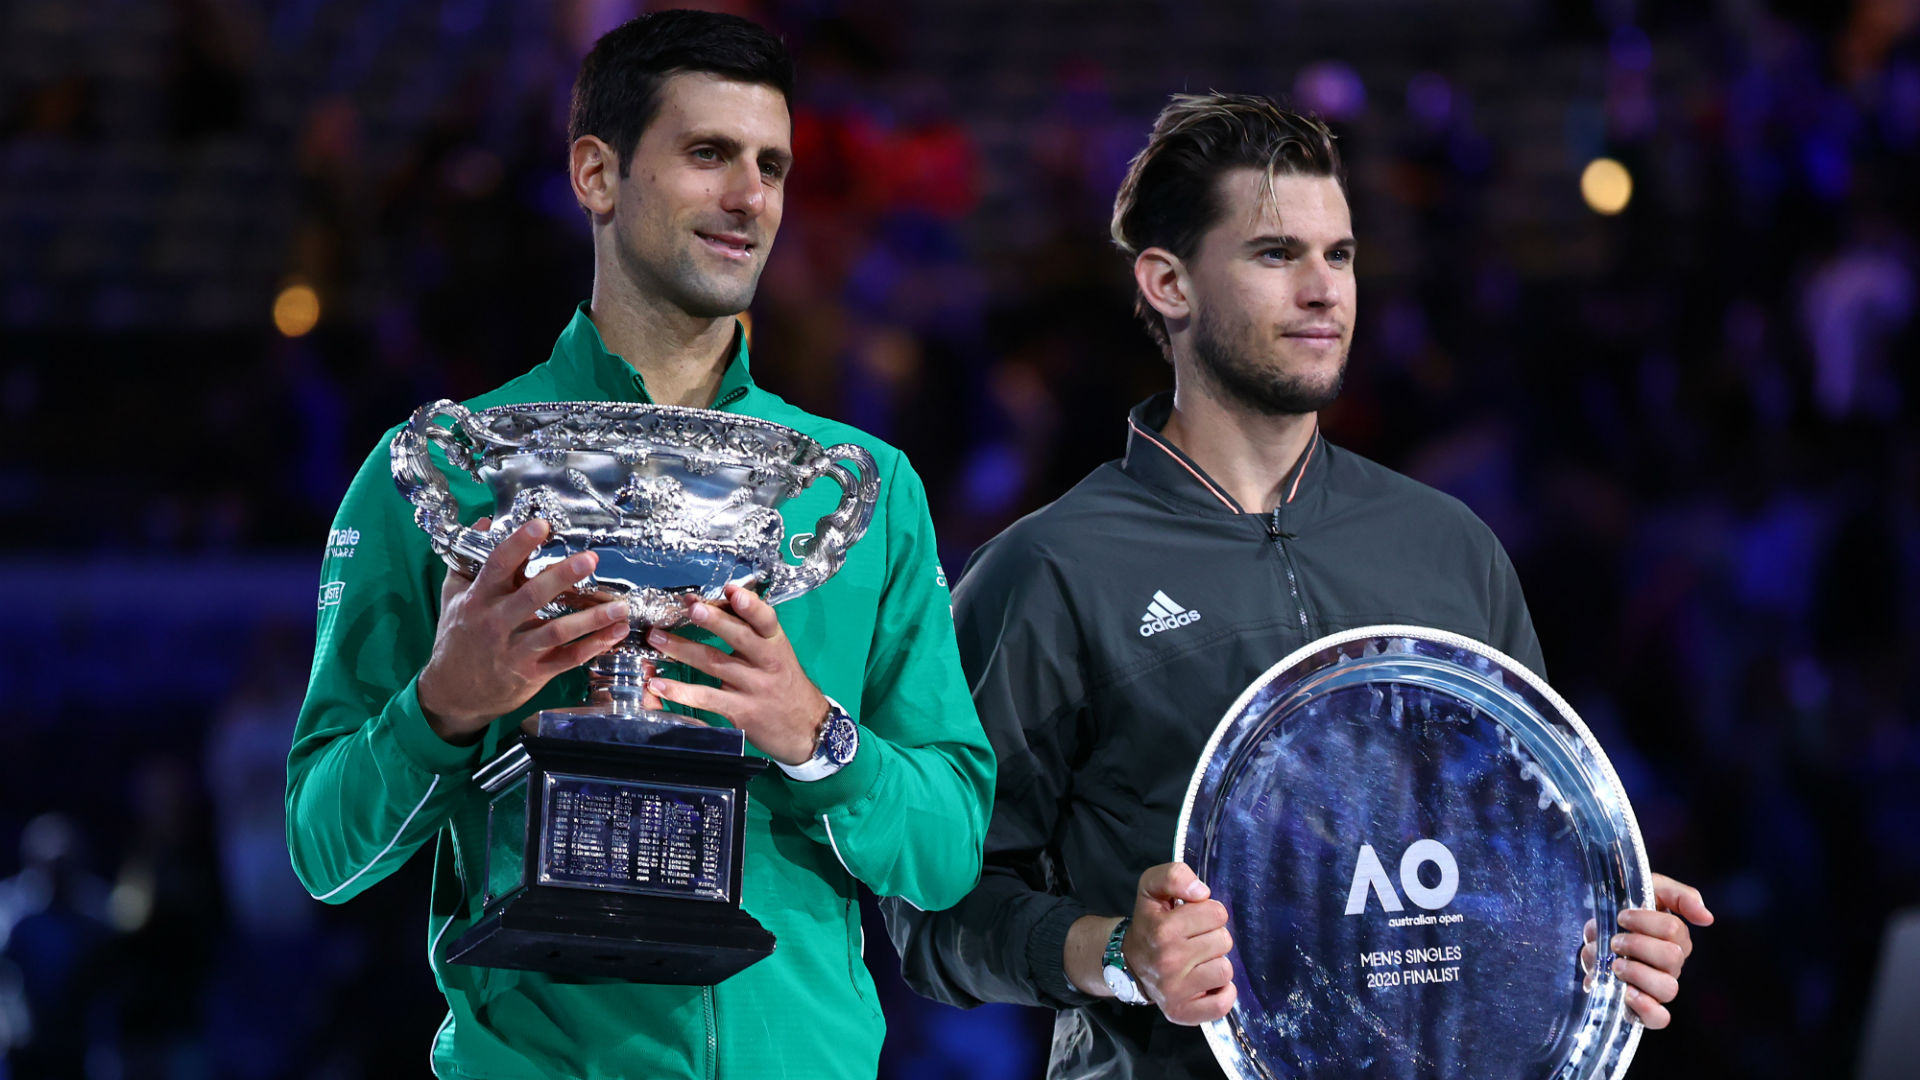 Australian Open 2020: We should stick together more than ever - Djokovic calls for unity after eighth title